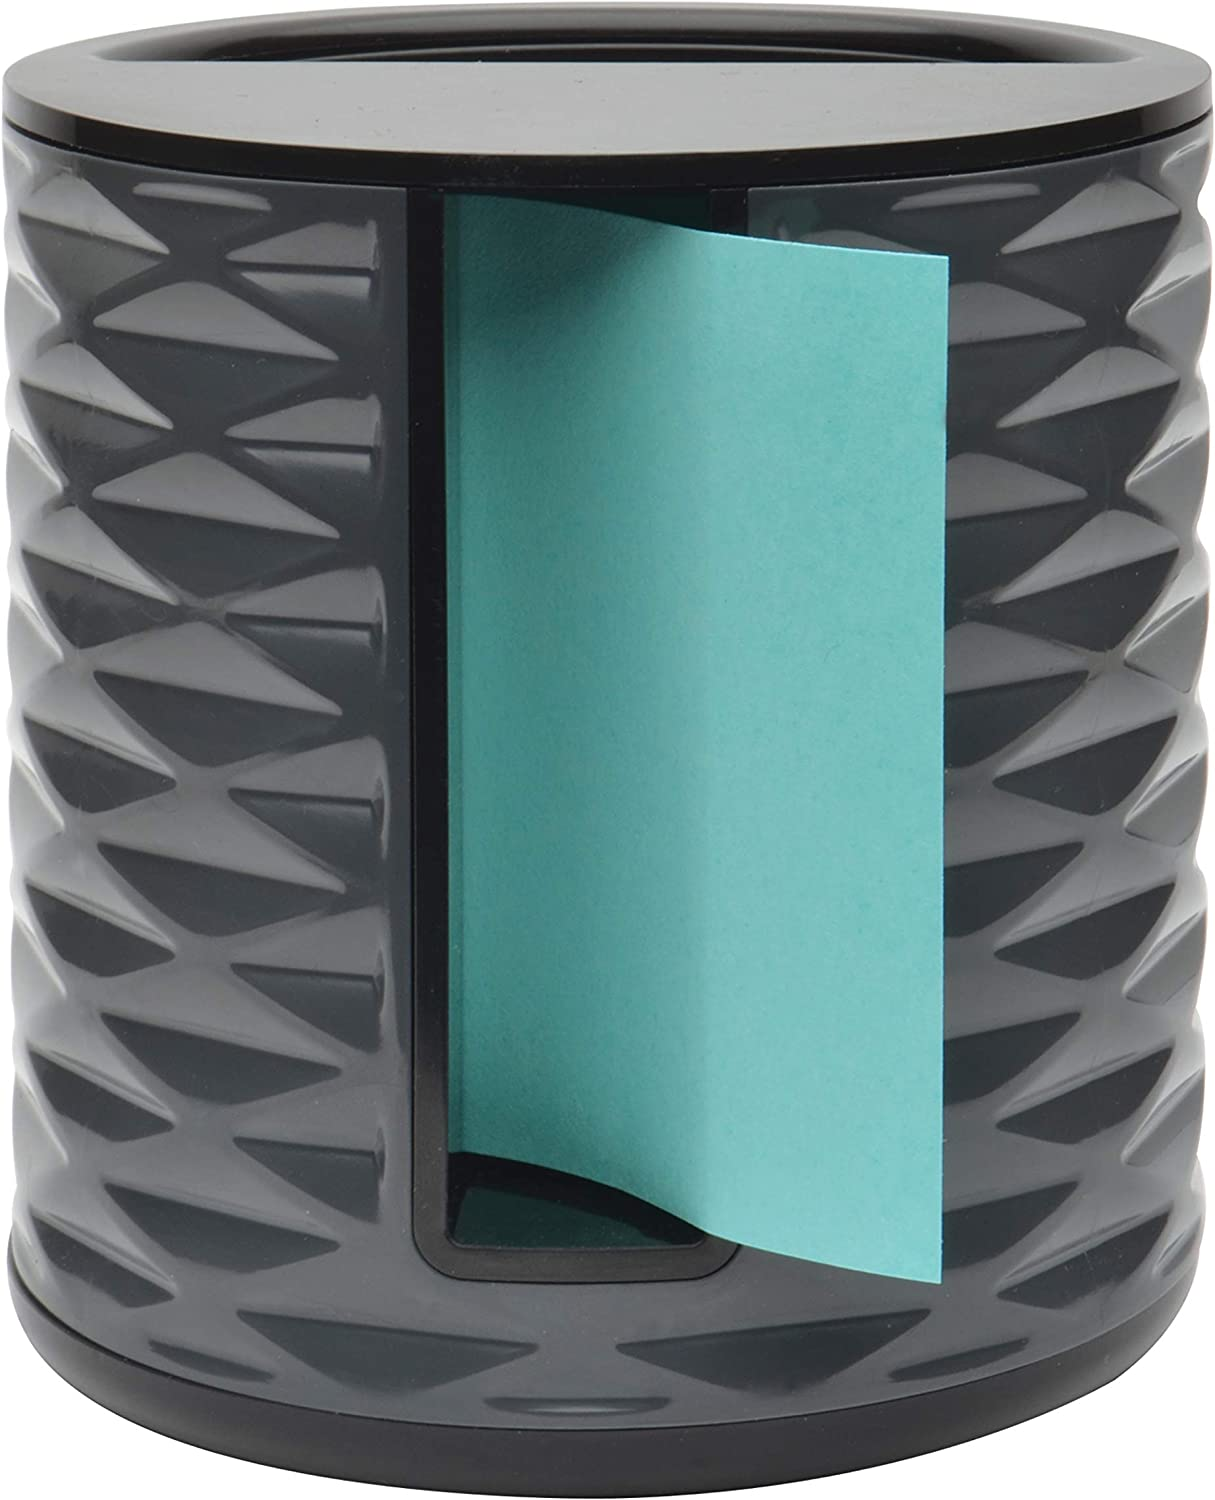 Post-it Note Dispenser Vertical - New Black with Grey ABS-330-B 3x3 in